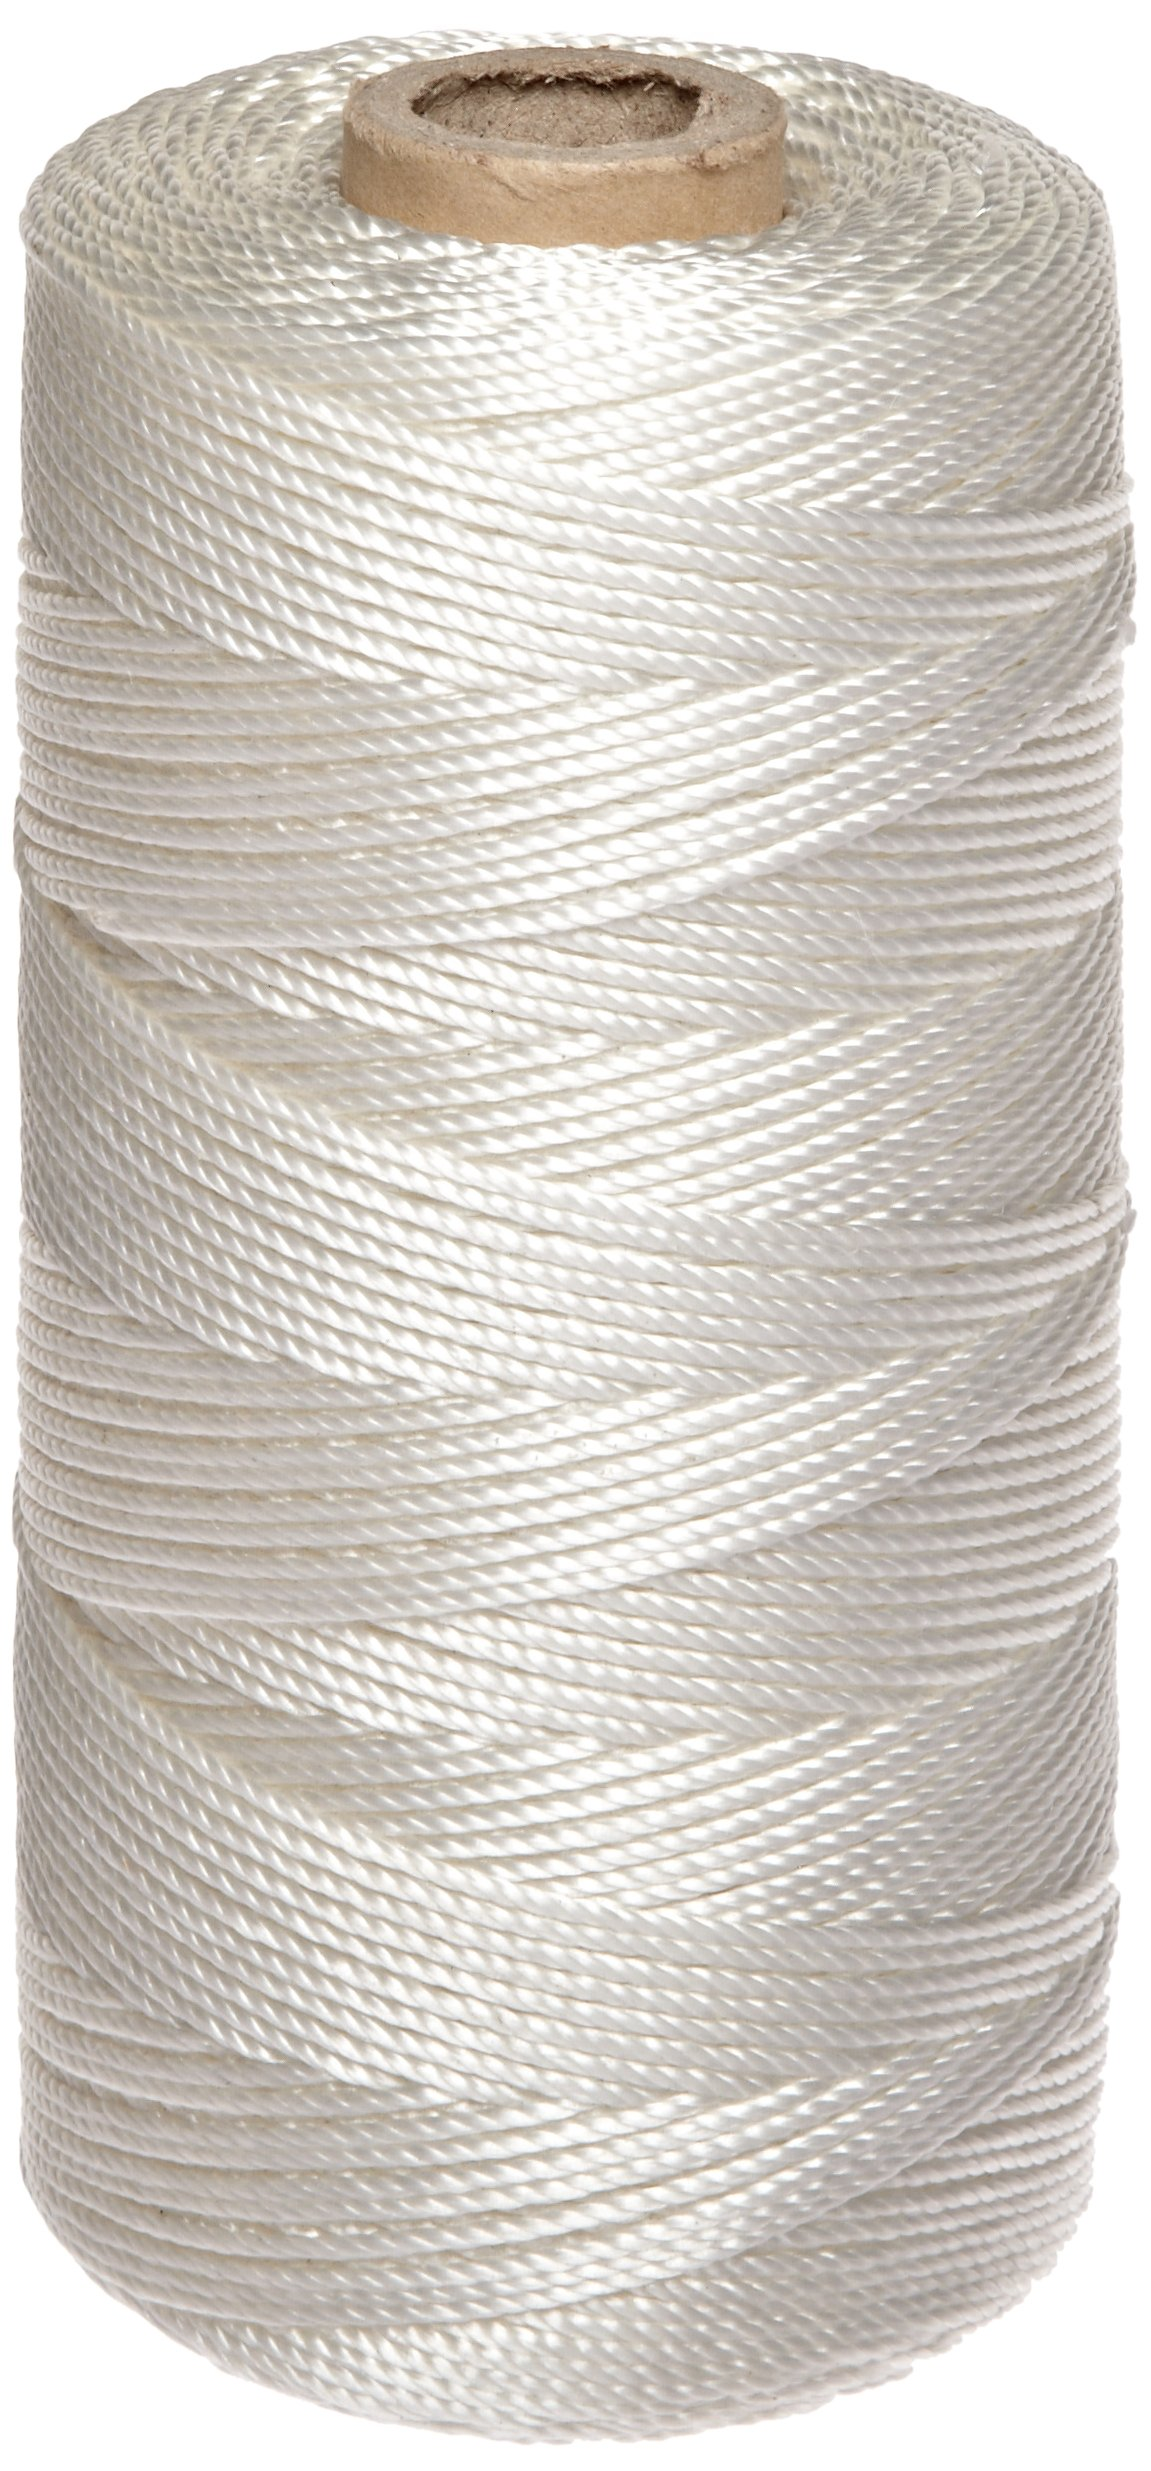 Rope King MT-1000 Mason Twine Twisted Polyester 1,000 feet by Rope King